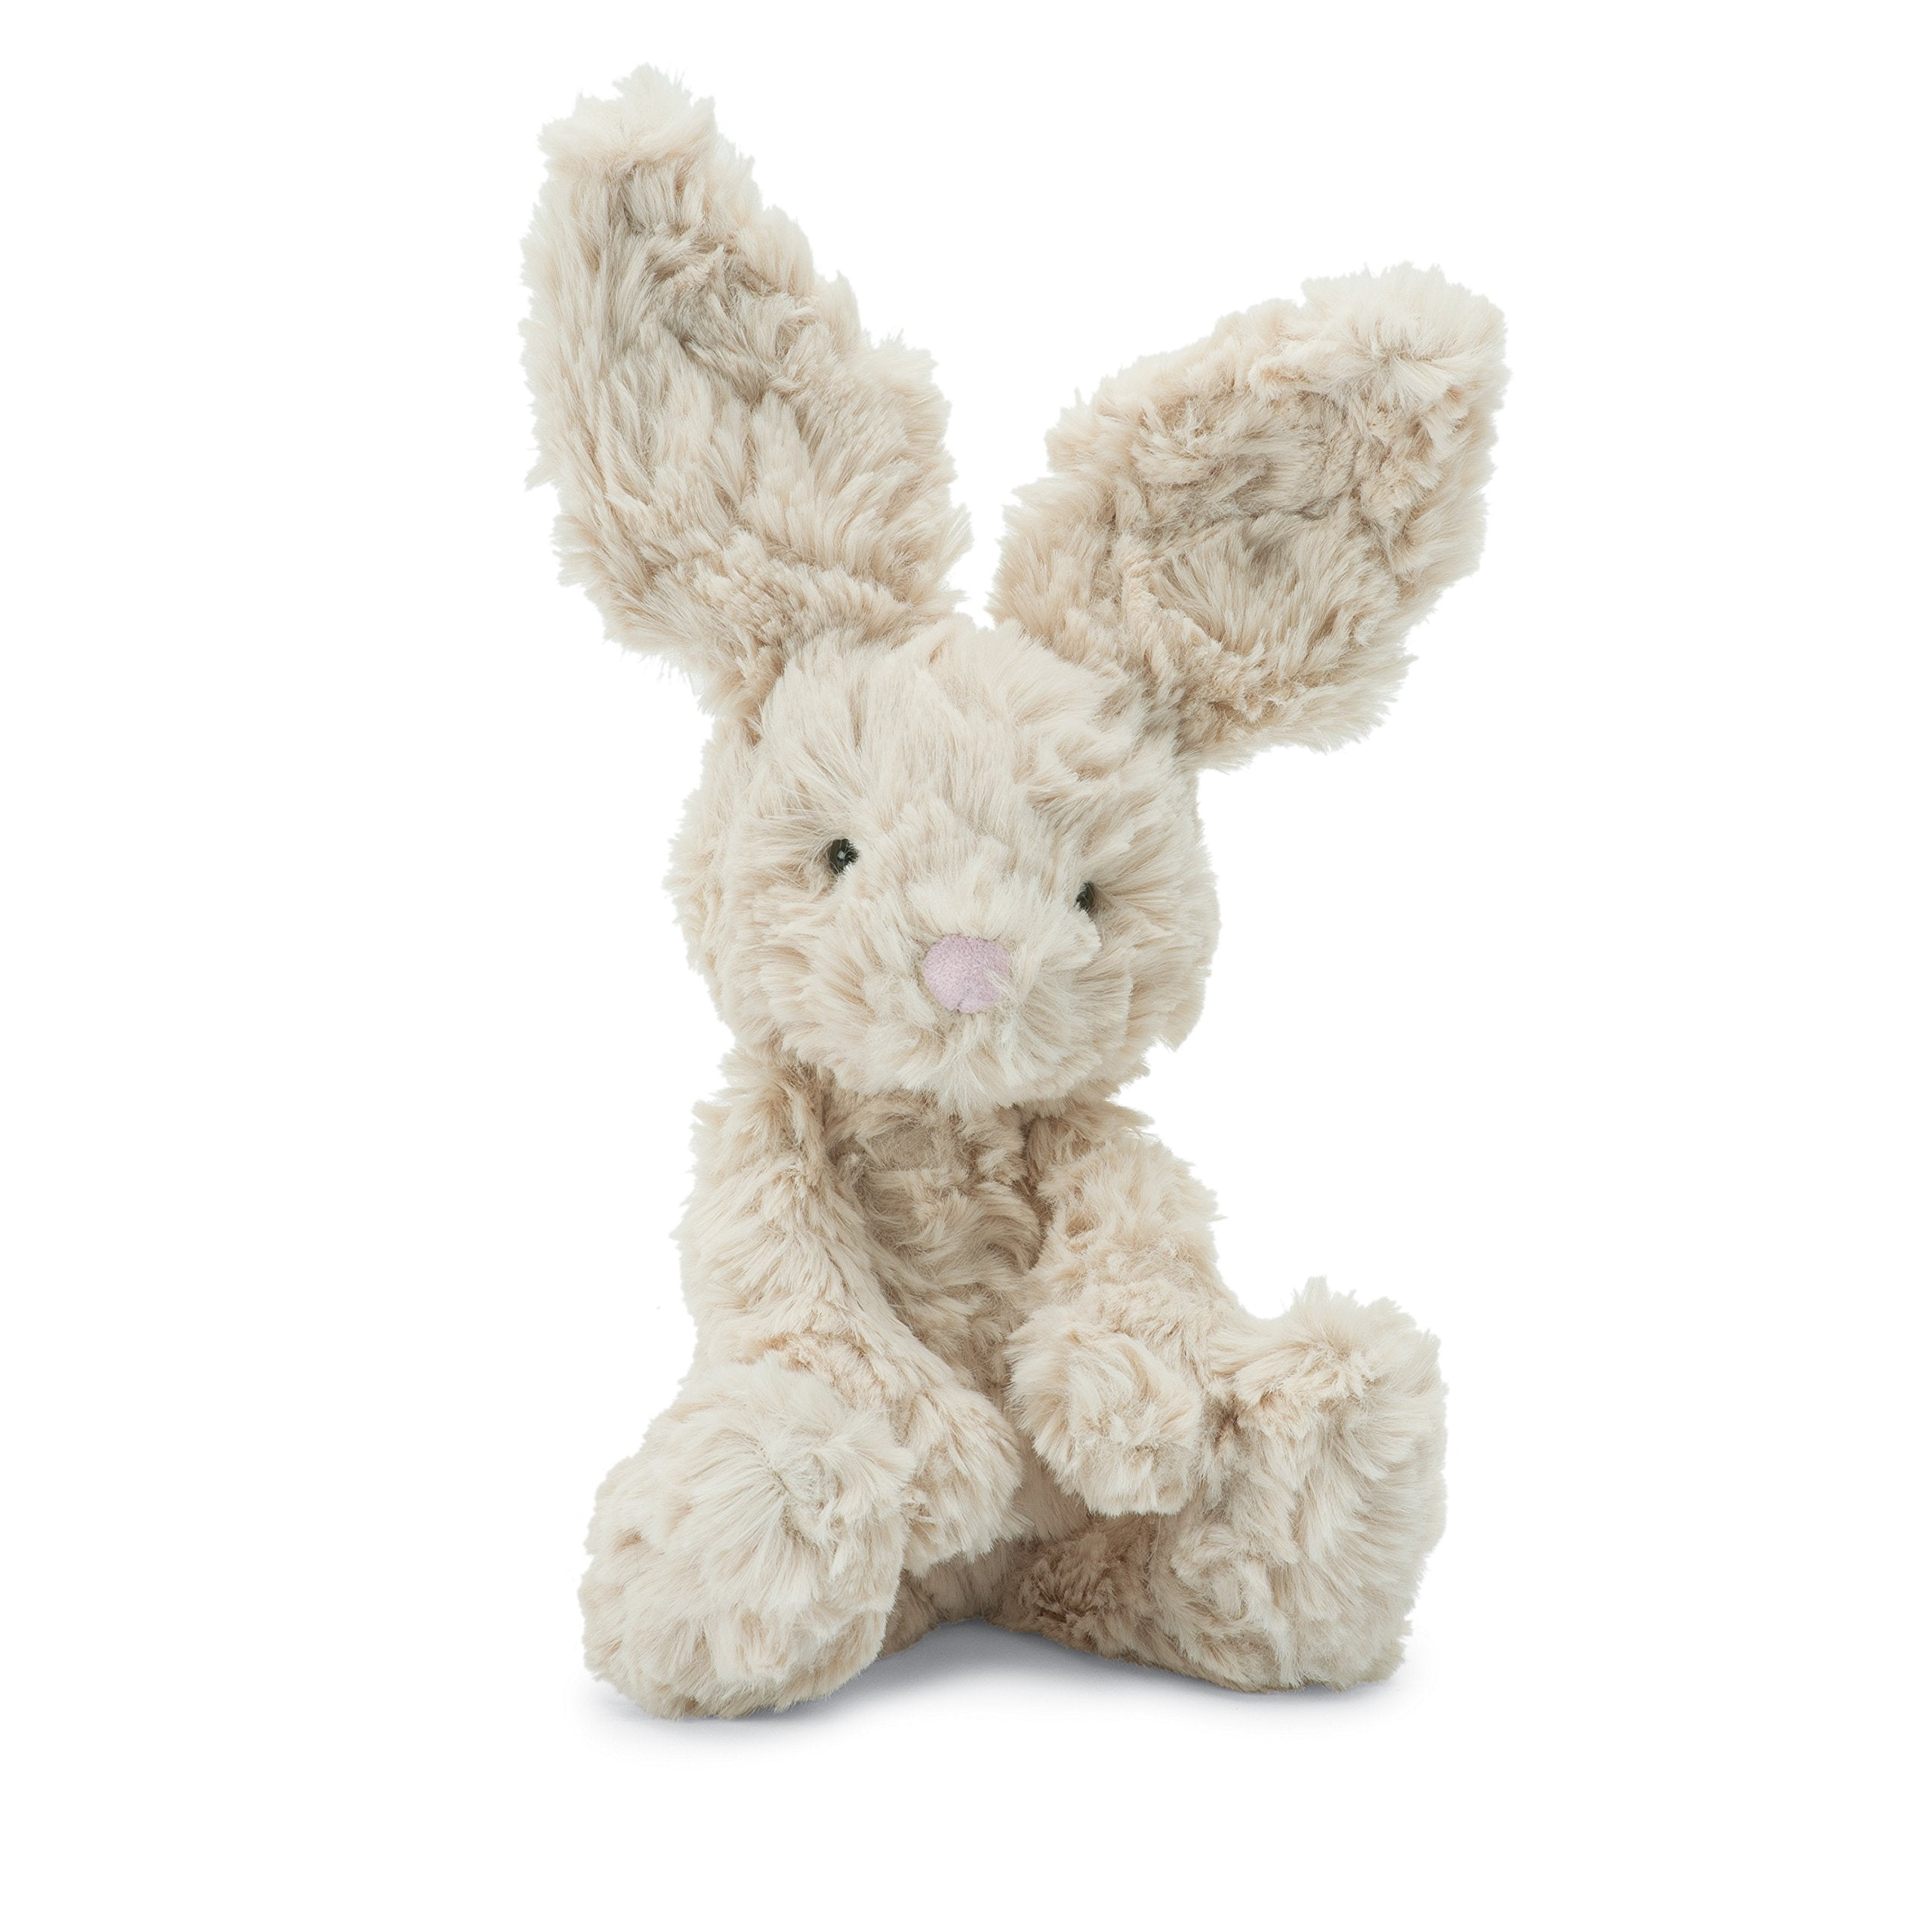 Jellycat Squiggle Bunny Stuffed Animal, Small, 9 inches - WishBasket